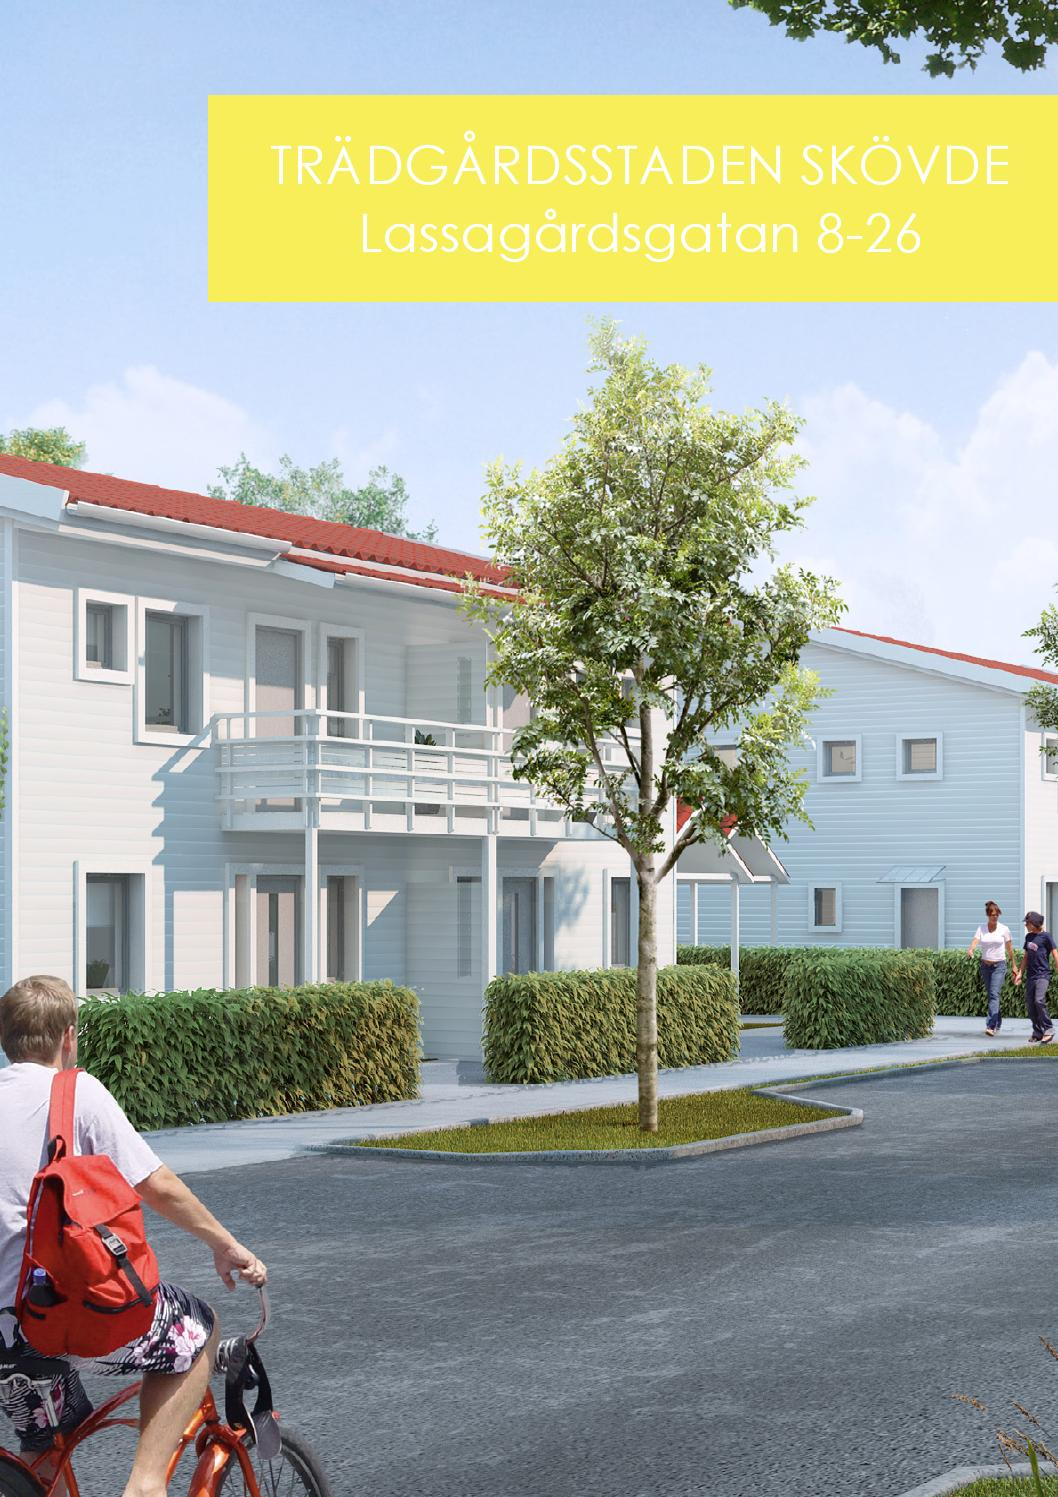 Tr dg rdsstaden sk vde by bright living issuu for Hem satteldorf prospekt